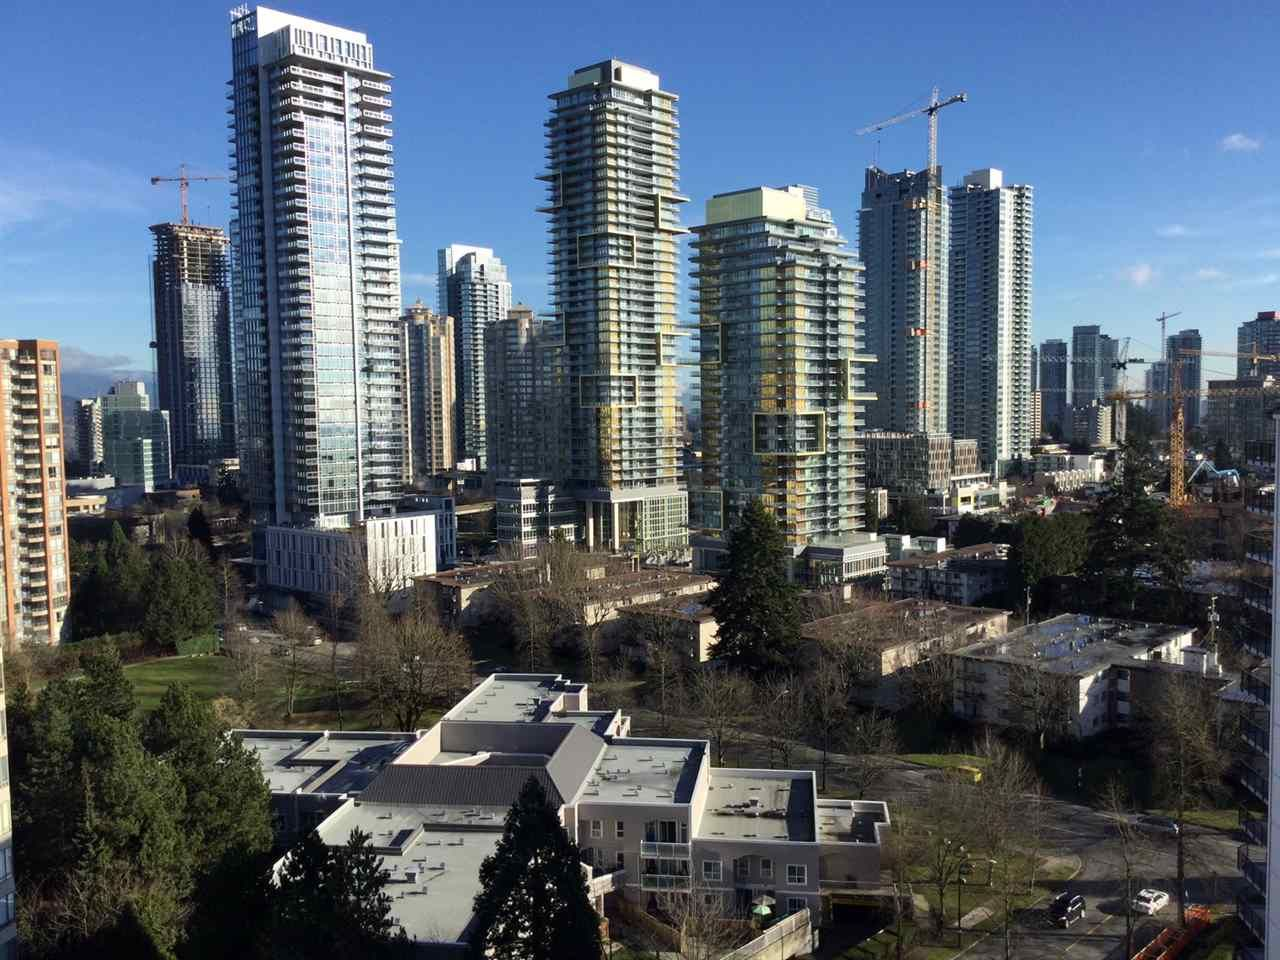 """Photo 15: Photos: 1802 4300 MAYBERRY Street in Burnaby: Metrotown Condo for sale in """"Times Square"""" (Burnaby South)  : MLS®# R2529822"""